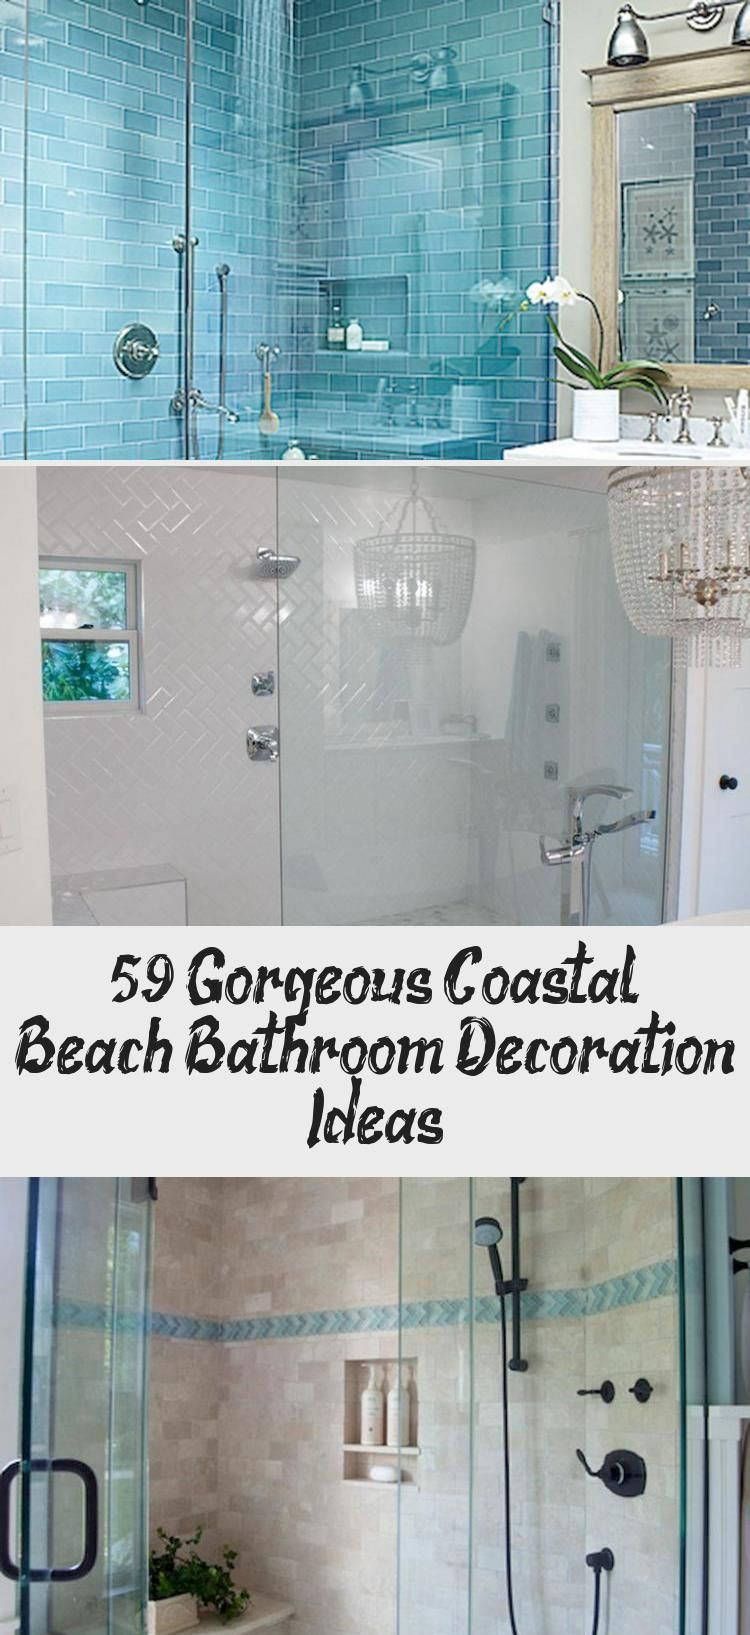 59+ Gorgeous Coastal Beach Bathroom Decoration Ideas – İdeas Bathroom